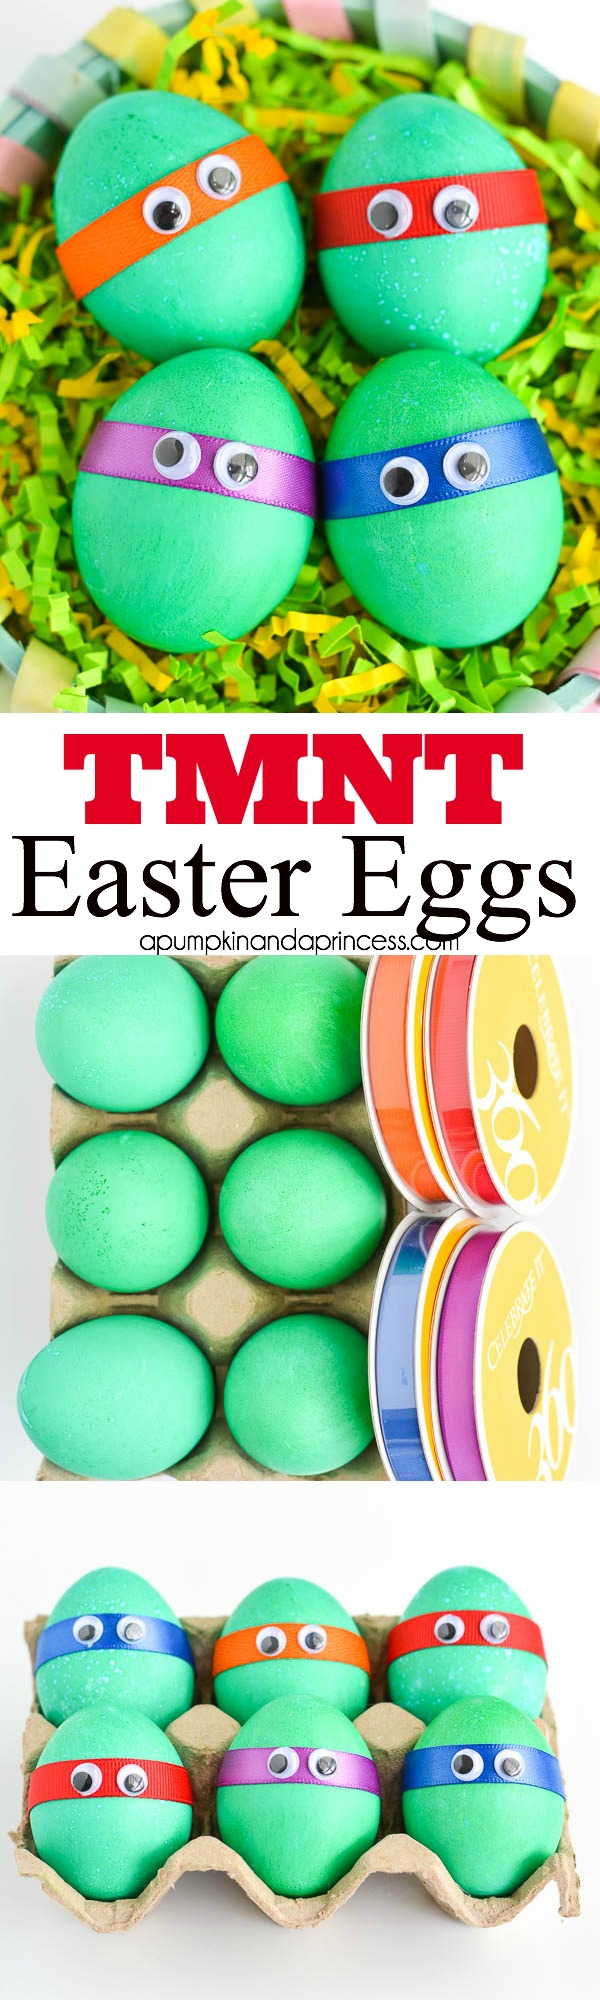 Dyed Ninja Turtles Easter Eggs.